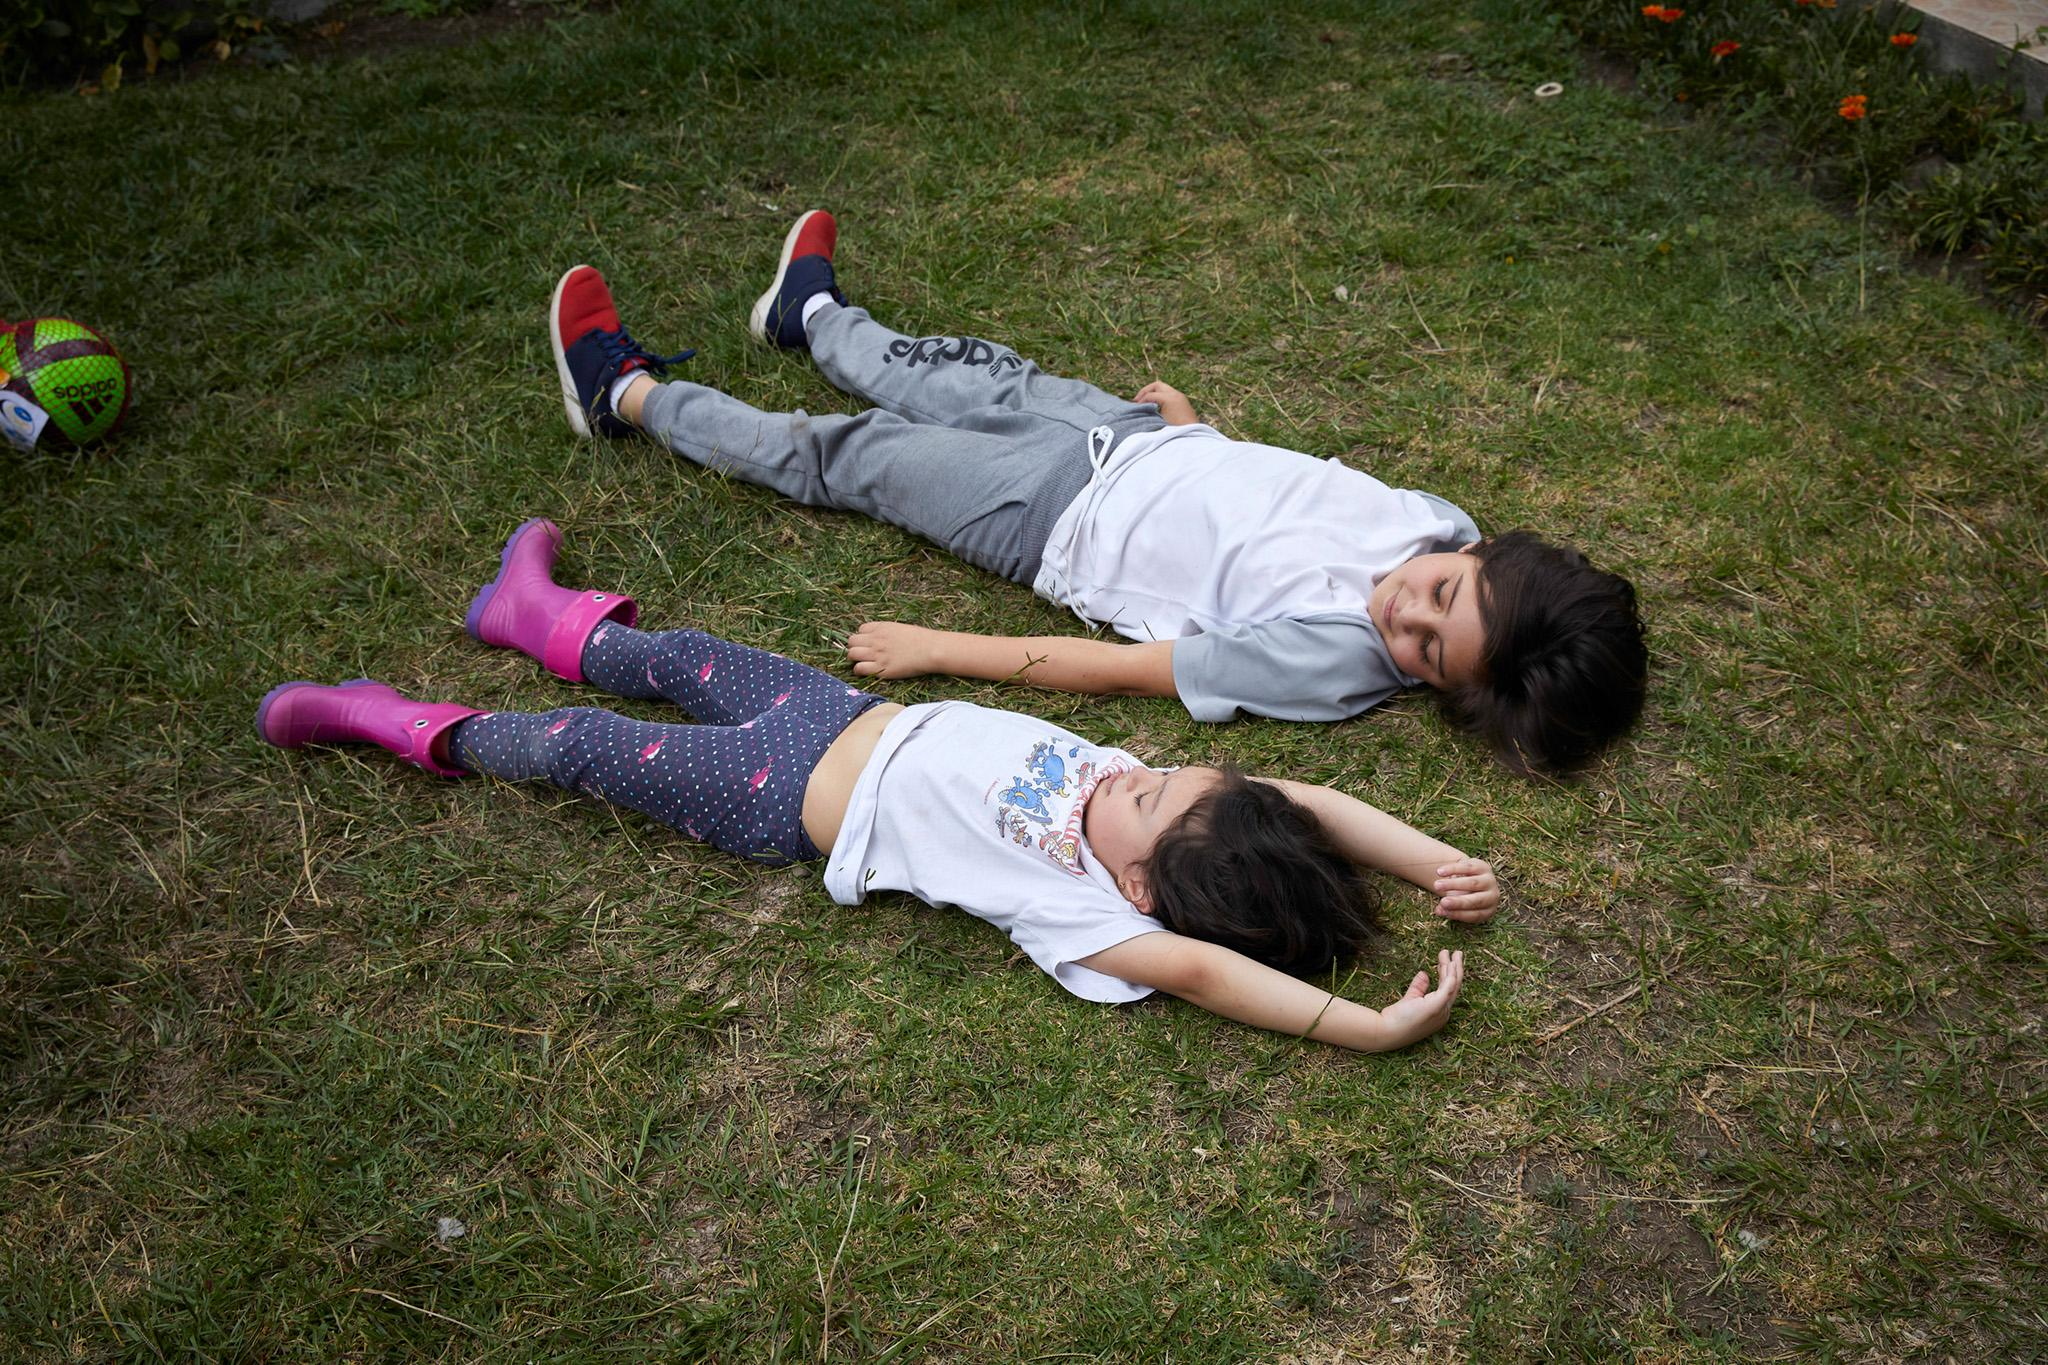 Helena and Gerardo, 6 and 9 years old, rest in the patio of their house after having played with their father Rafael. Both have been studying at the Educational Foundation Centro del Amanecer for 2 years when they came with their parents from Venezuela. Their mother, Xioralbys, is an educator at the same school. Gerardo has TDH and has always had a hard time in other schools, which is why his parents sought a different education for their children when they arrived in Ecuador. Tumbaco, Ecuador.